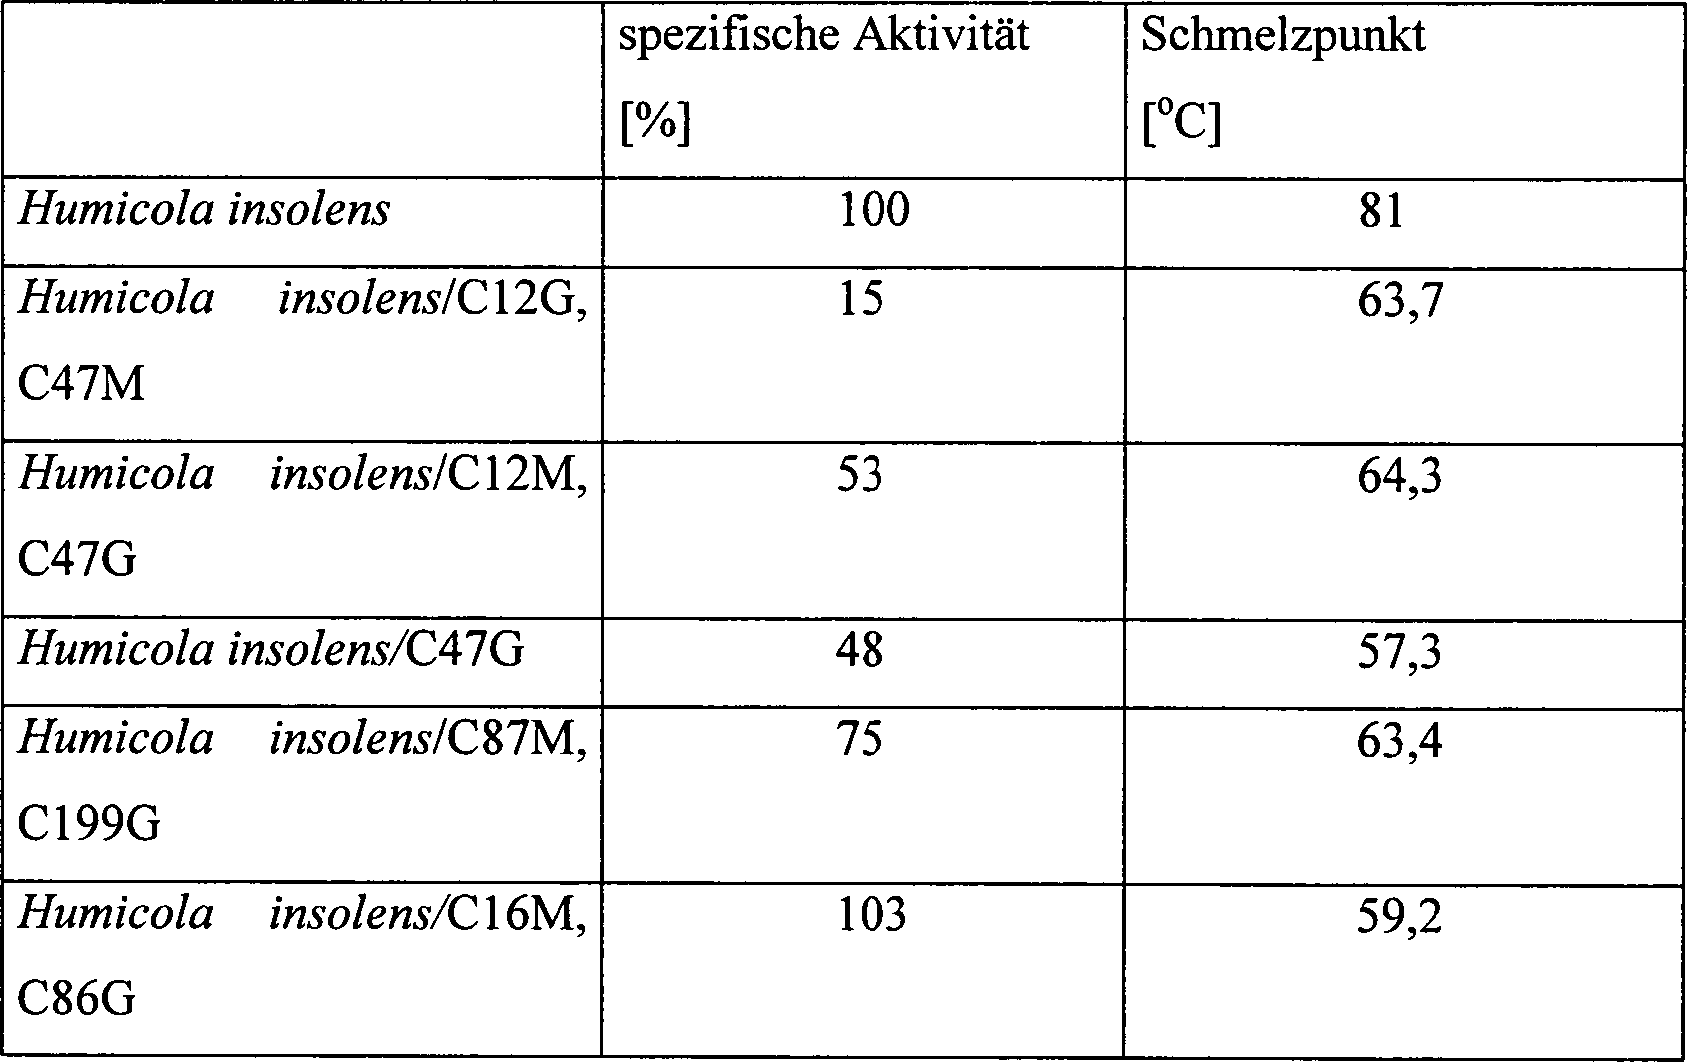 DE69735767T2 - Cellulasevarianten - Google Patents